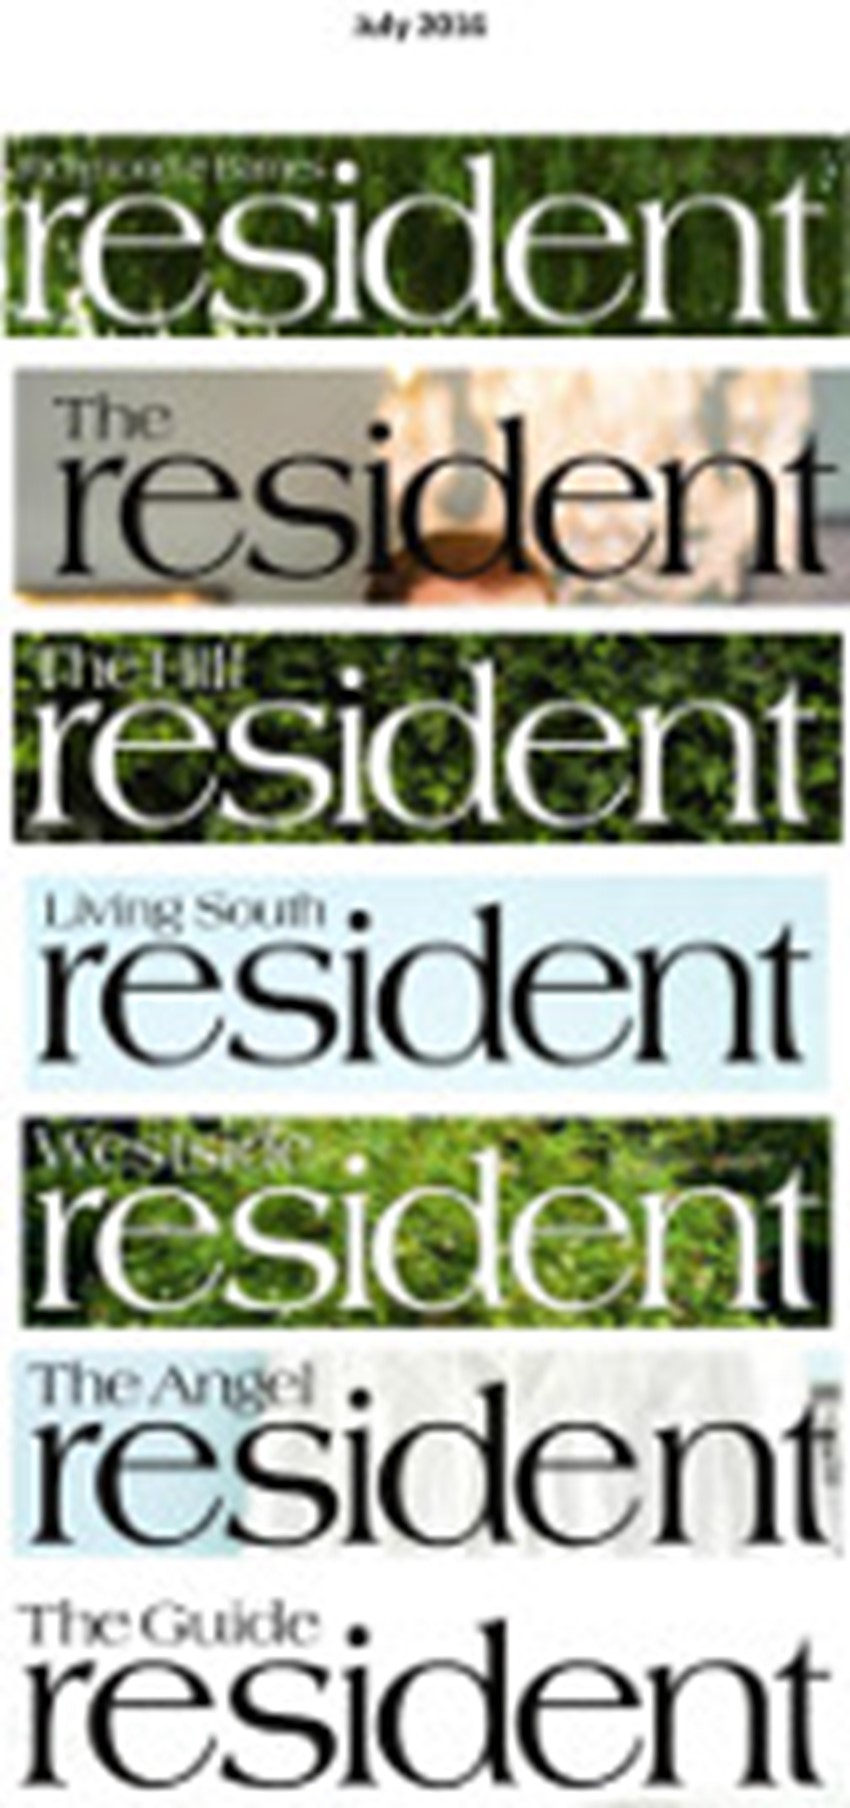 The Resident July 2 0 1 6 X 7 Titles